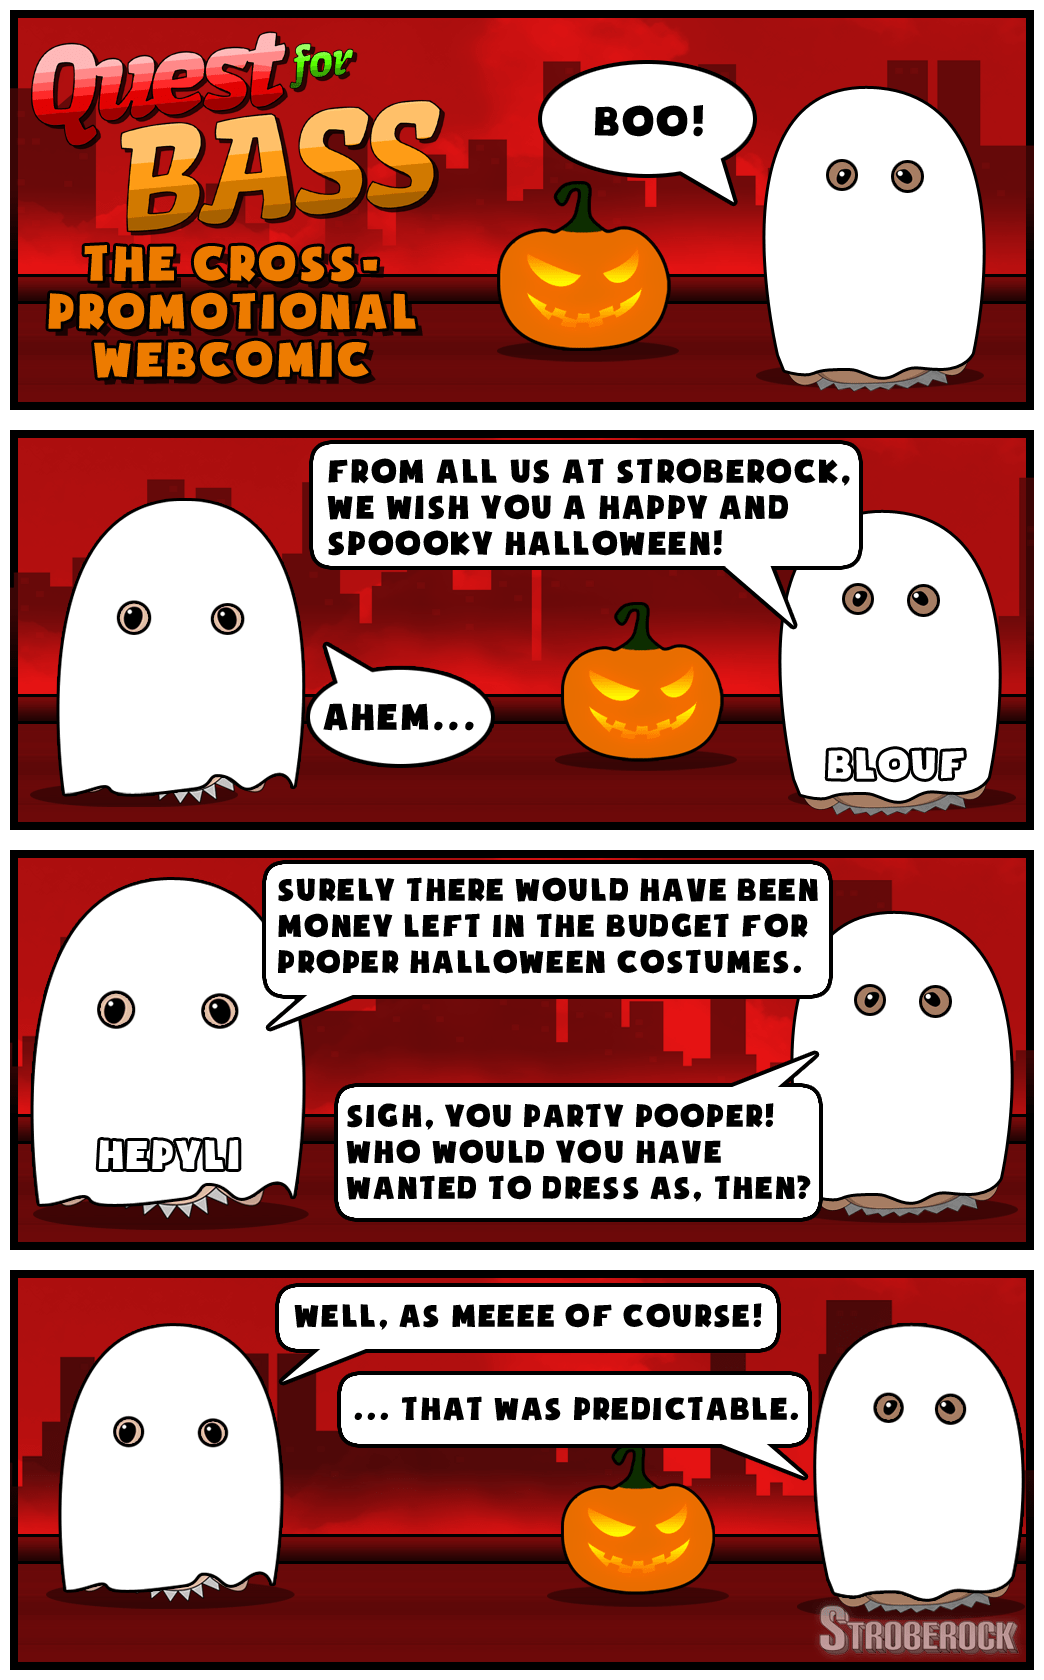 A webcomic where Blouf and Hepyli, from the game Quest for Bass, wishes you all a happy and spooky halloween!